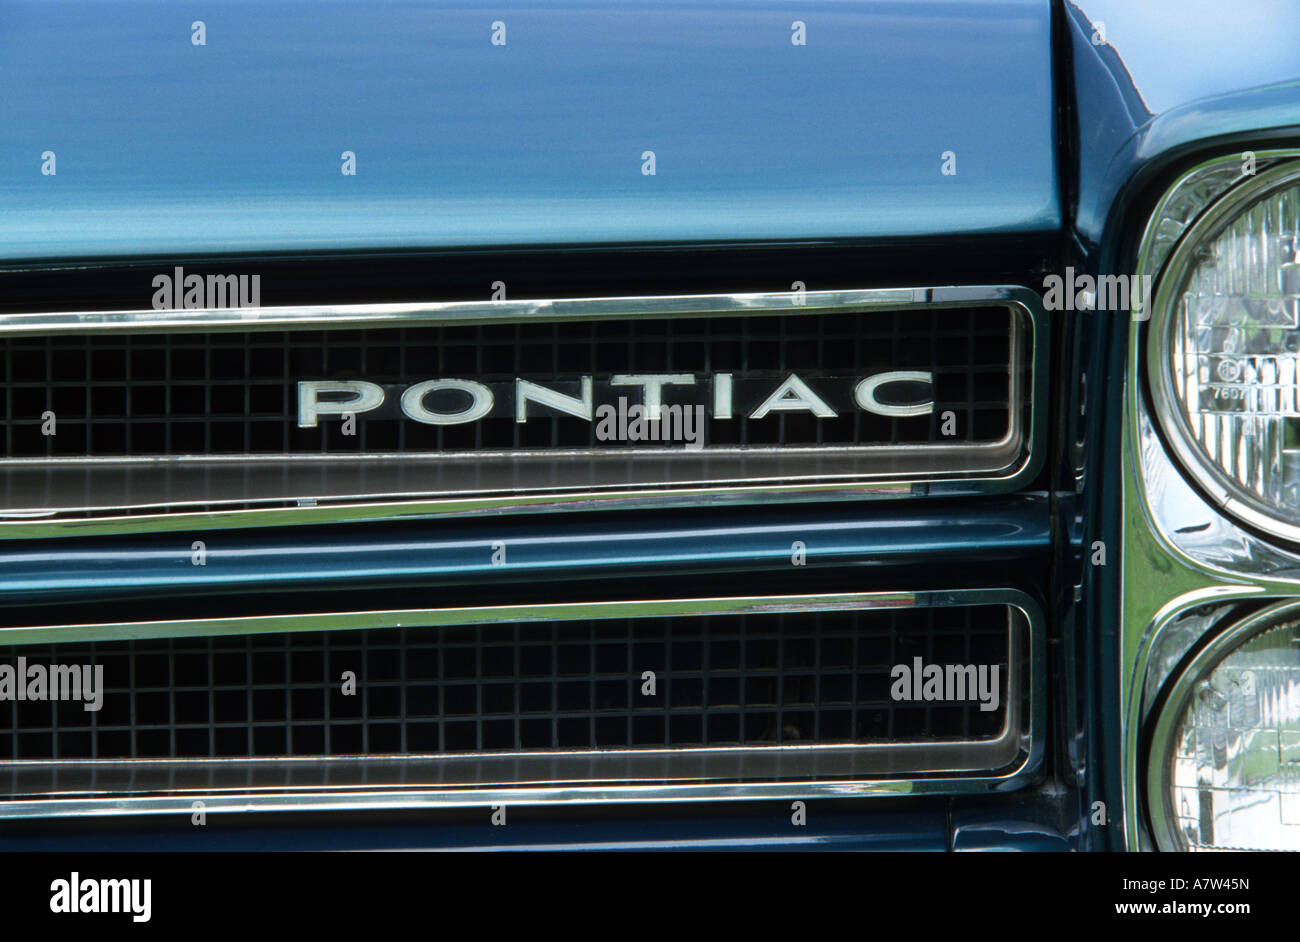 Pontiac Star Chief Executive Of 1966 American Car Manufacturer 1926 To Date